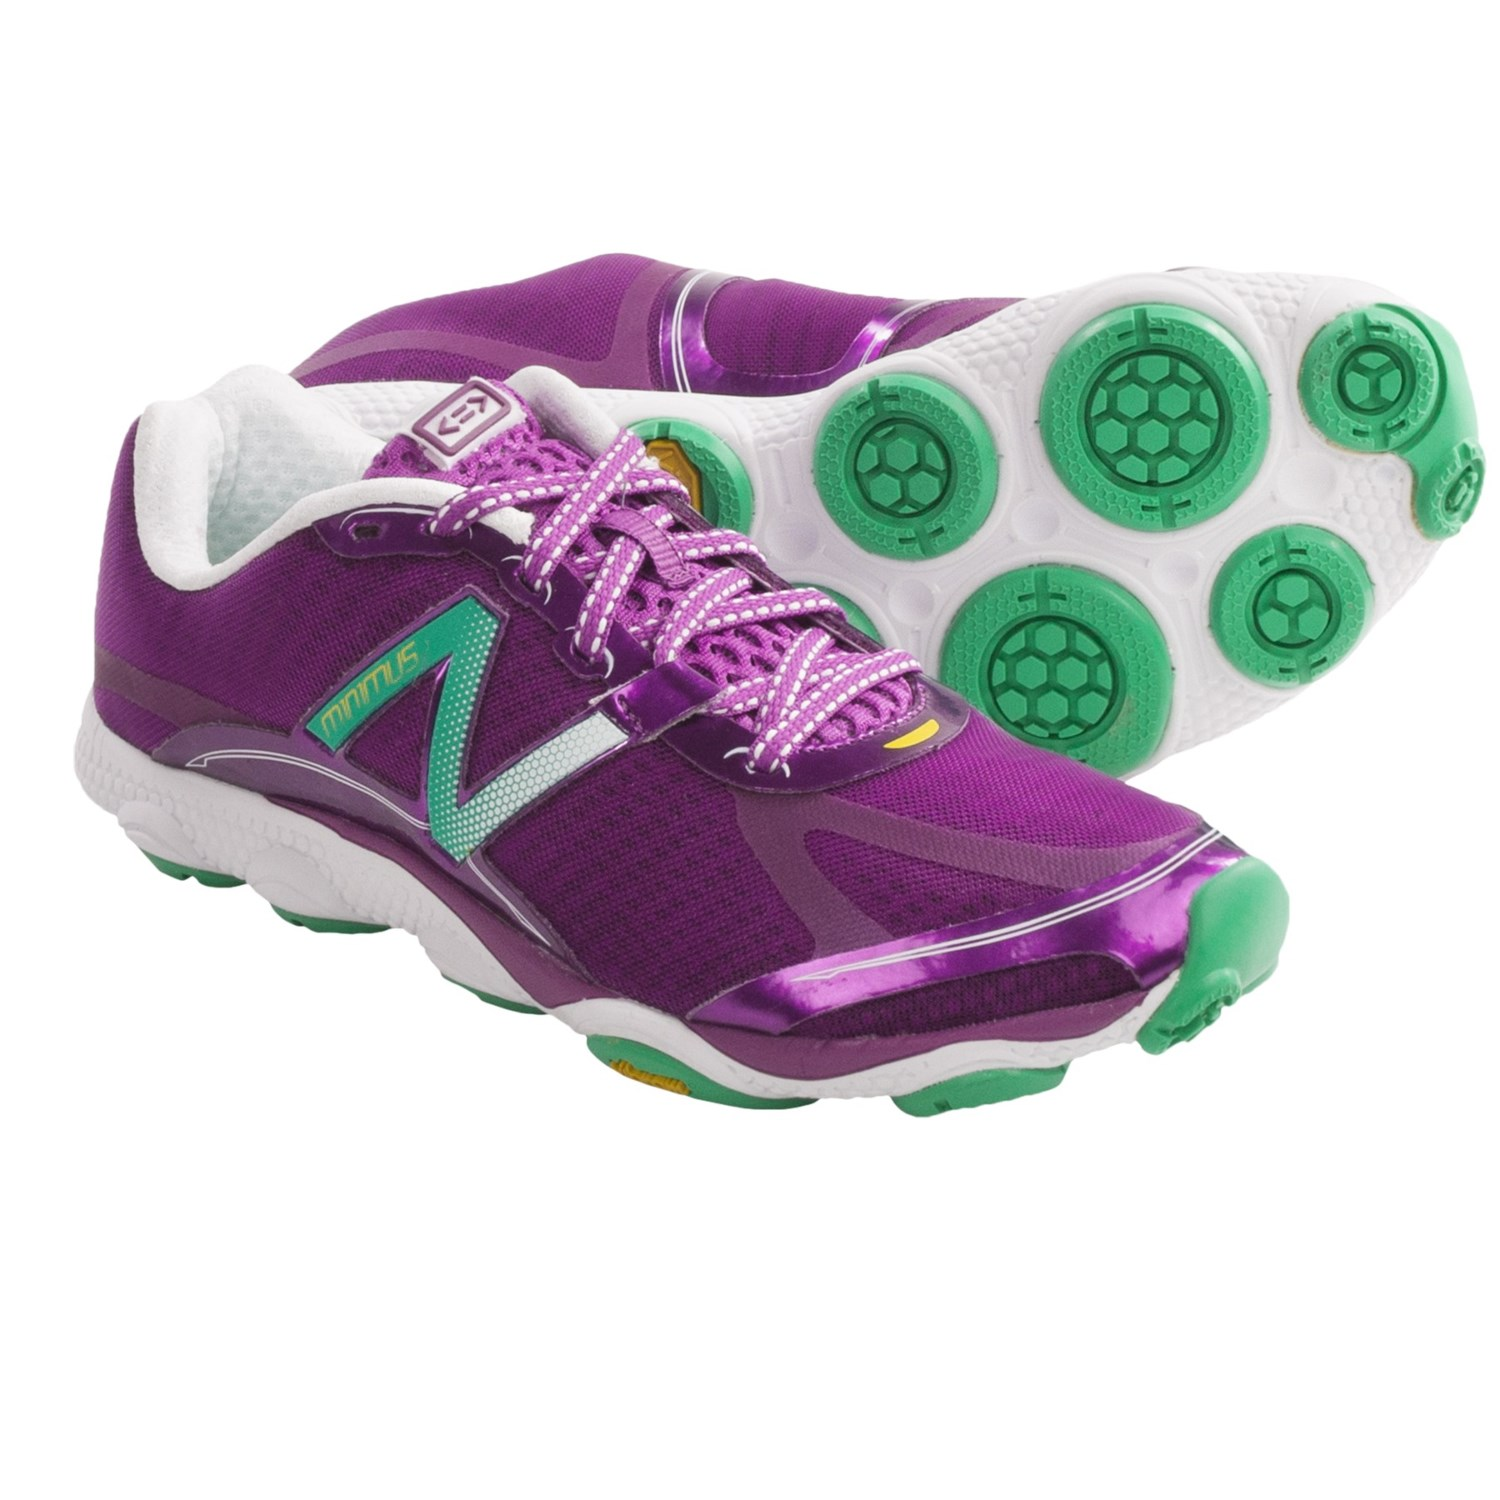 New Balance Women'S Lightweight Running Shoes 13